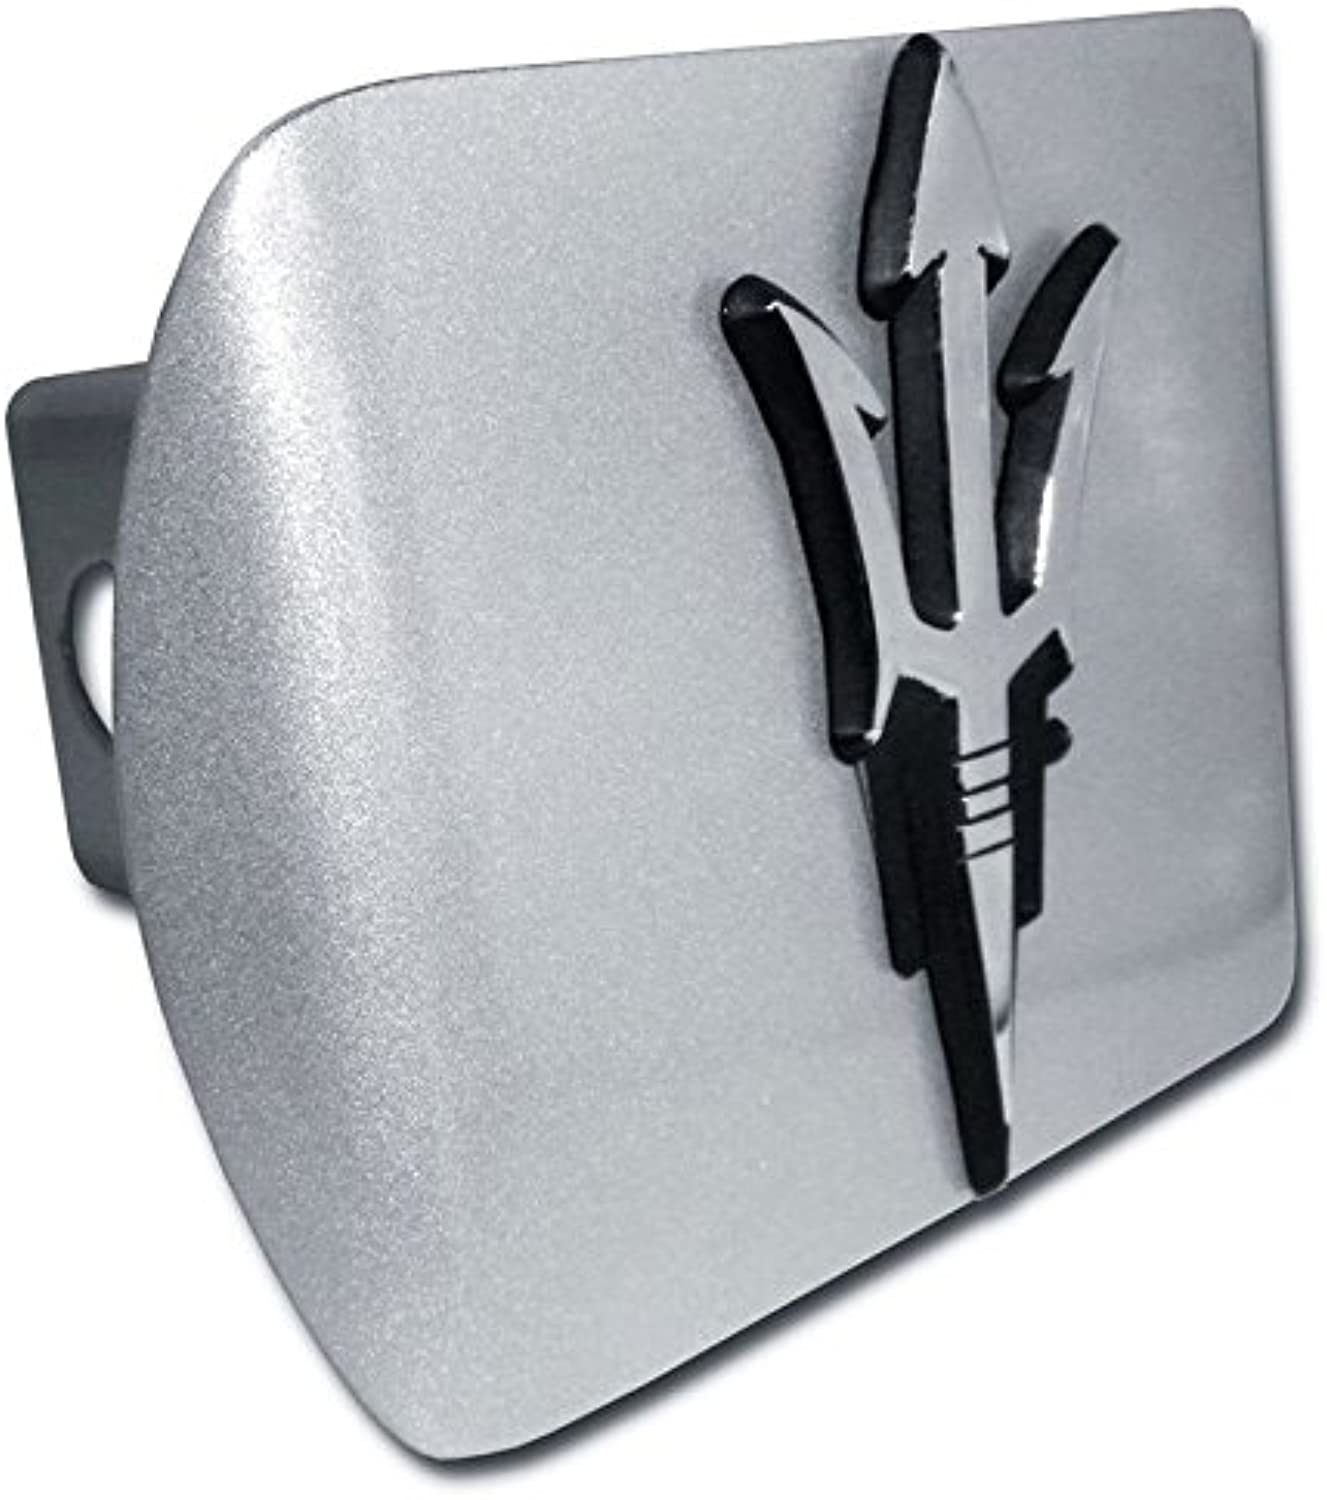 Arizona State Sundevils  Brushed Silver with Chrome  Pitchfork  Emblem  Metal Trailer Hitch Cover Fits 2 Inch Auto Car Truck Receiver with NCAA College Sports Logo